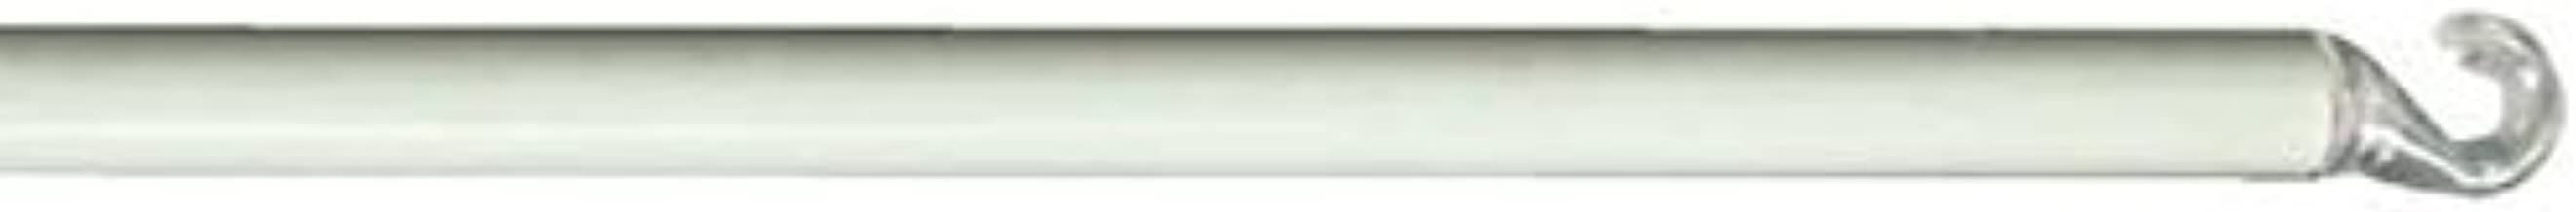 DESIGNER'S TOUCH FWW29.5W 1028469 Series Wand for 2